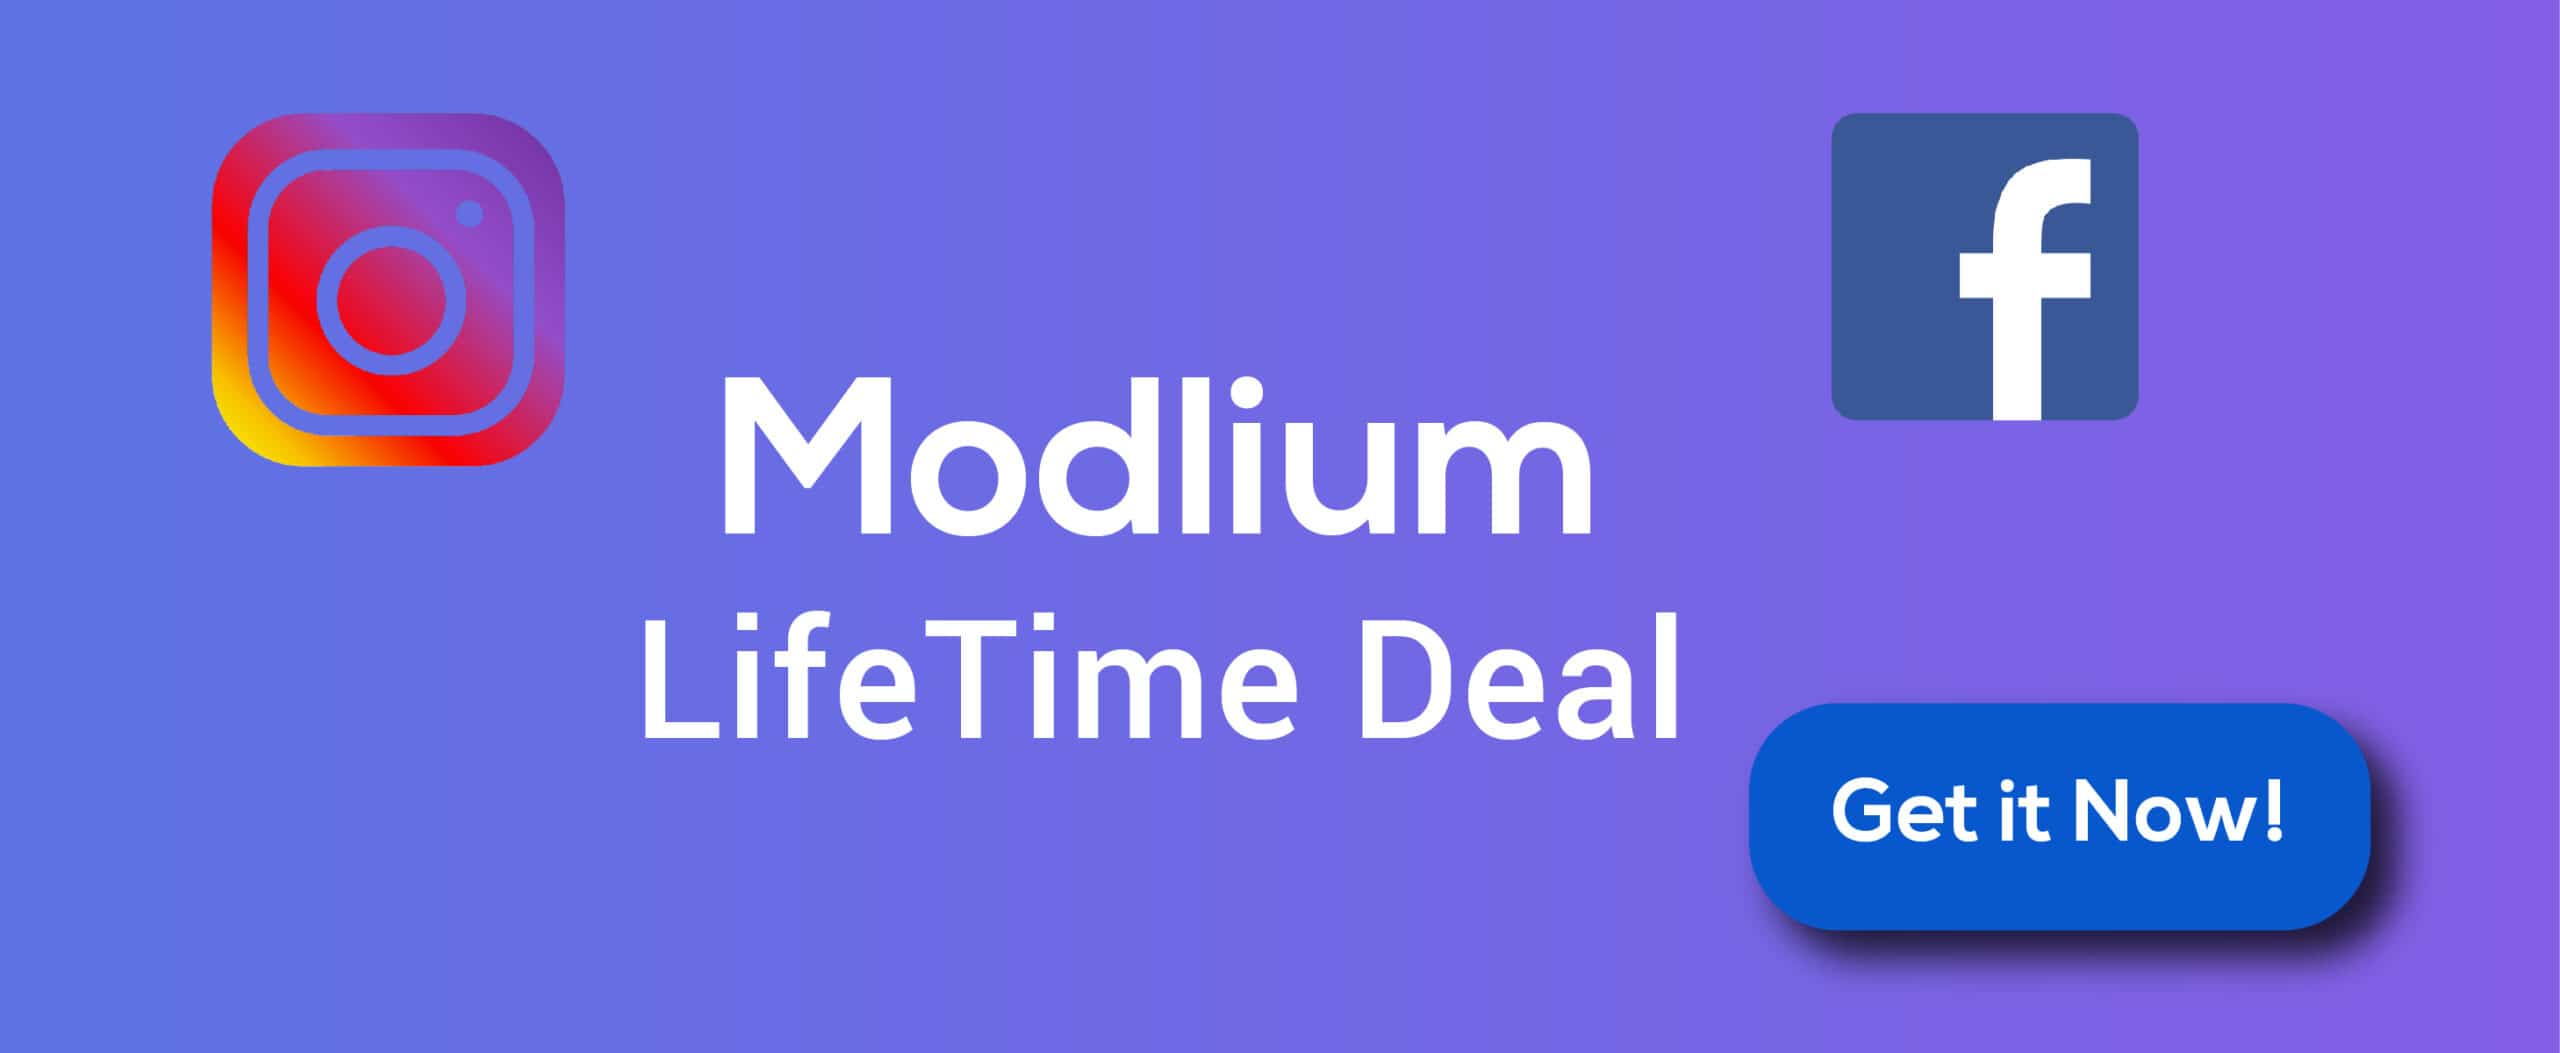 Modlium Reviews, Details And Modlium Lifetime Deal 2021